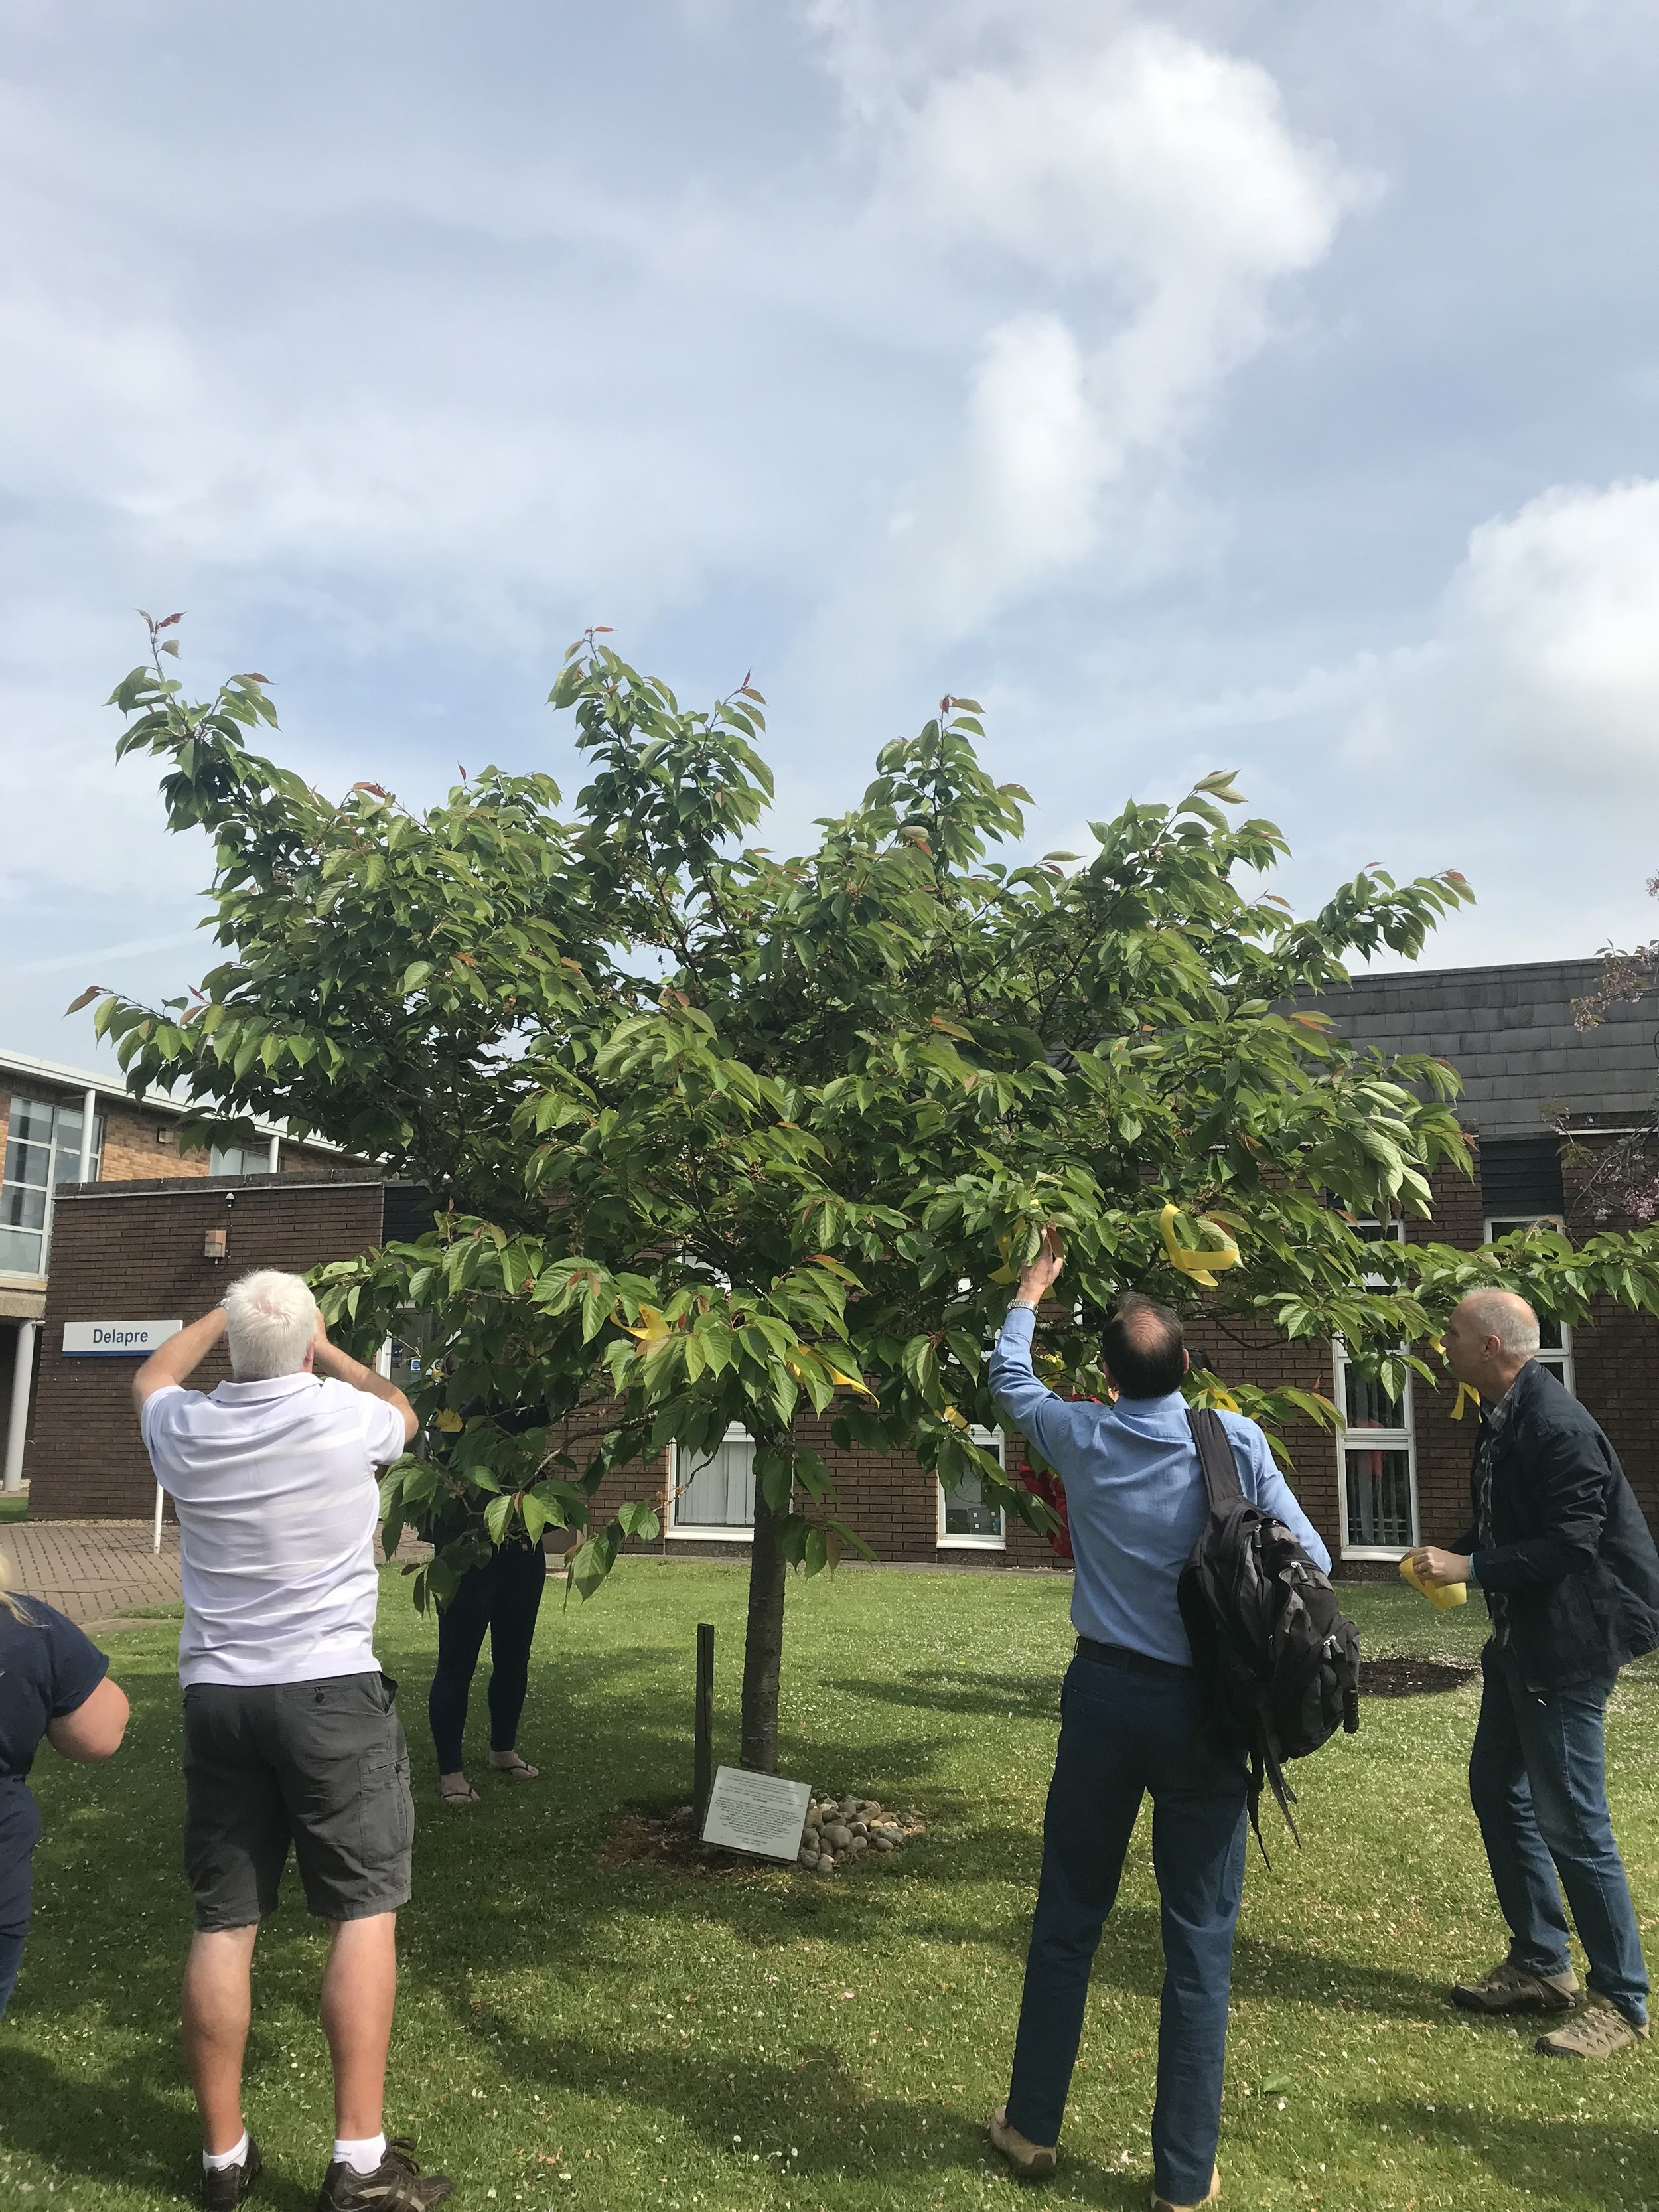 The Stephen Lawrence Memorial tree